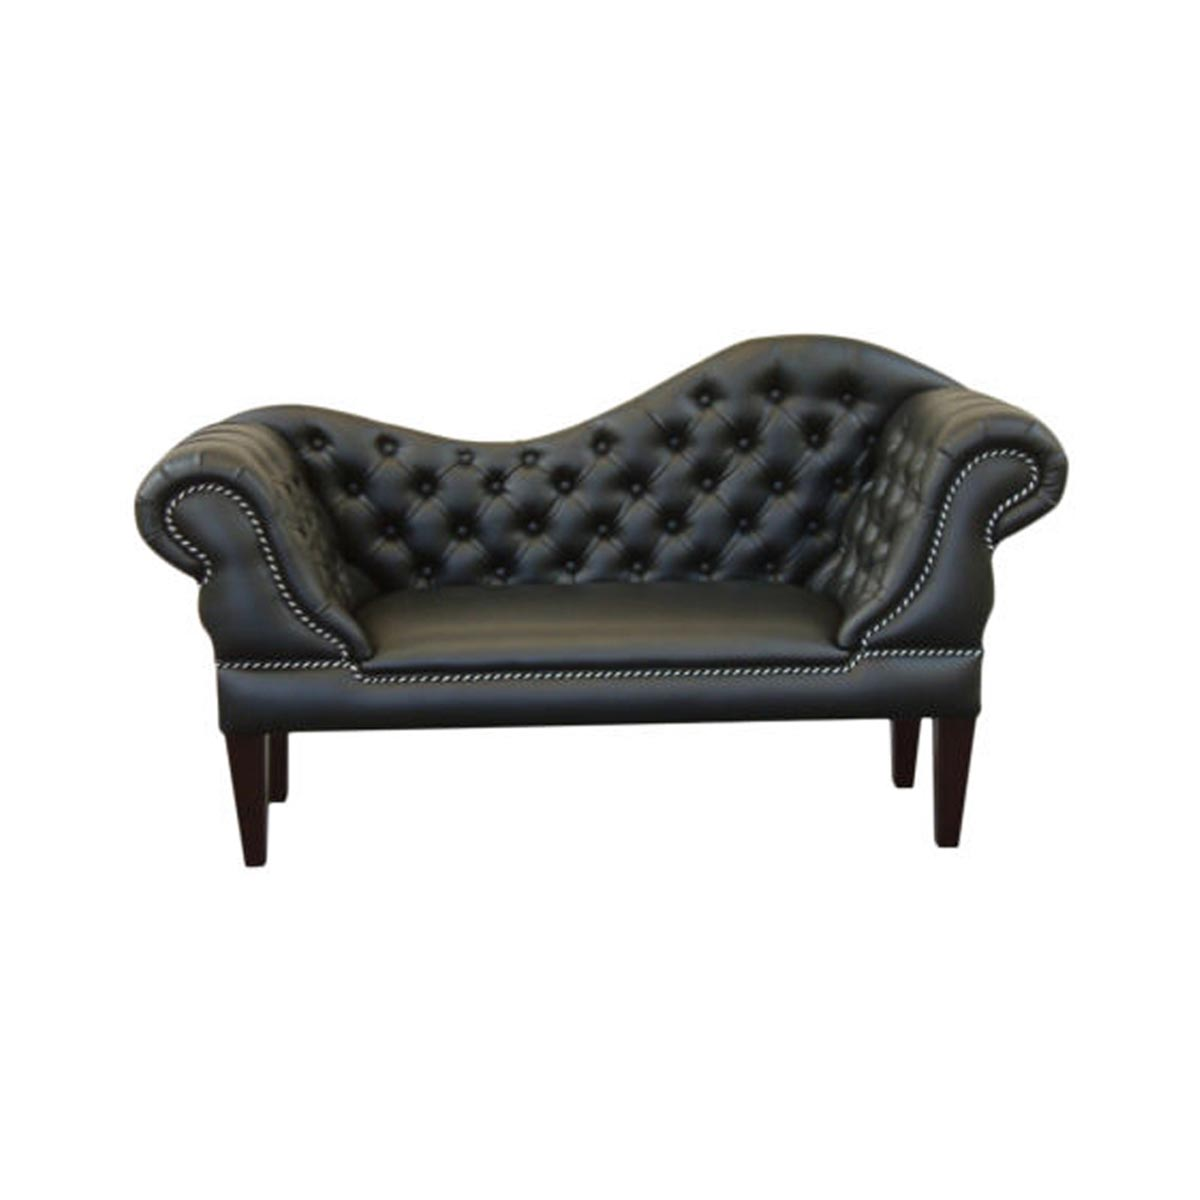 Black faux leather slipper sofa for Black faux leather chaise lounge